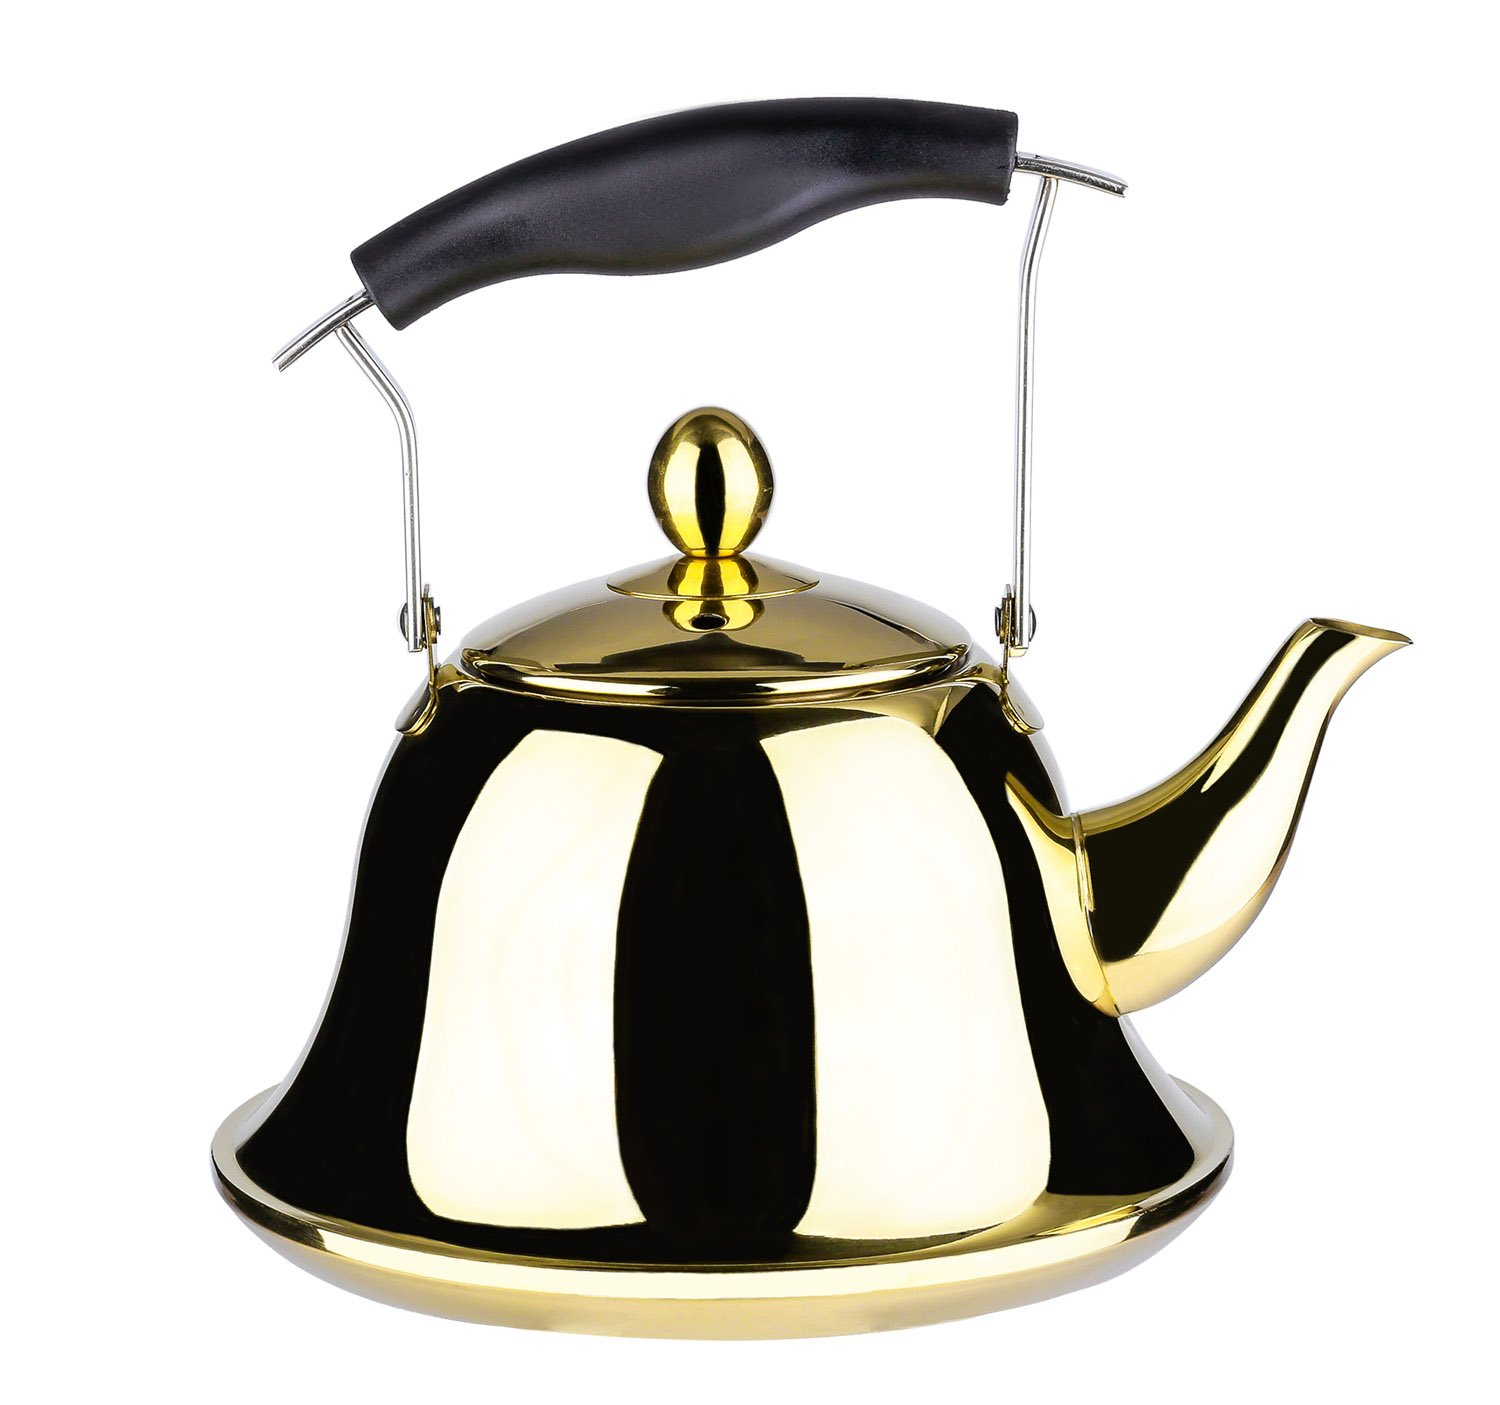 Onlycooker Whistling Tea Kettle Stainless Steel Stovetop Teakettle Sturdy Teapot for Tea Coffee Fast Boiling with Infuser Color Gold Mirror Finish 1.5 Liter / 1.6 Quart Teakettles-1-Gold-1.5L